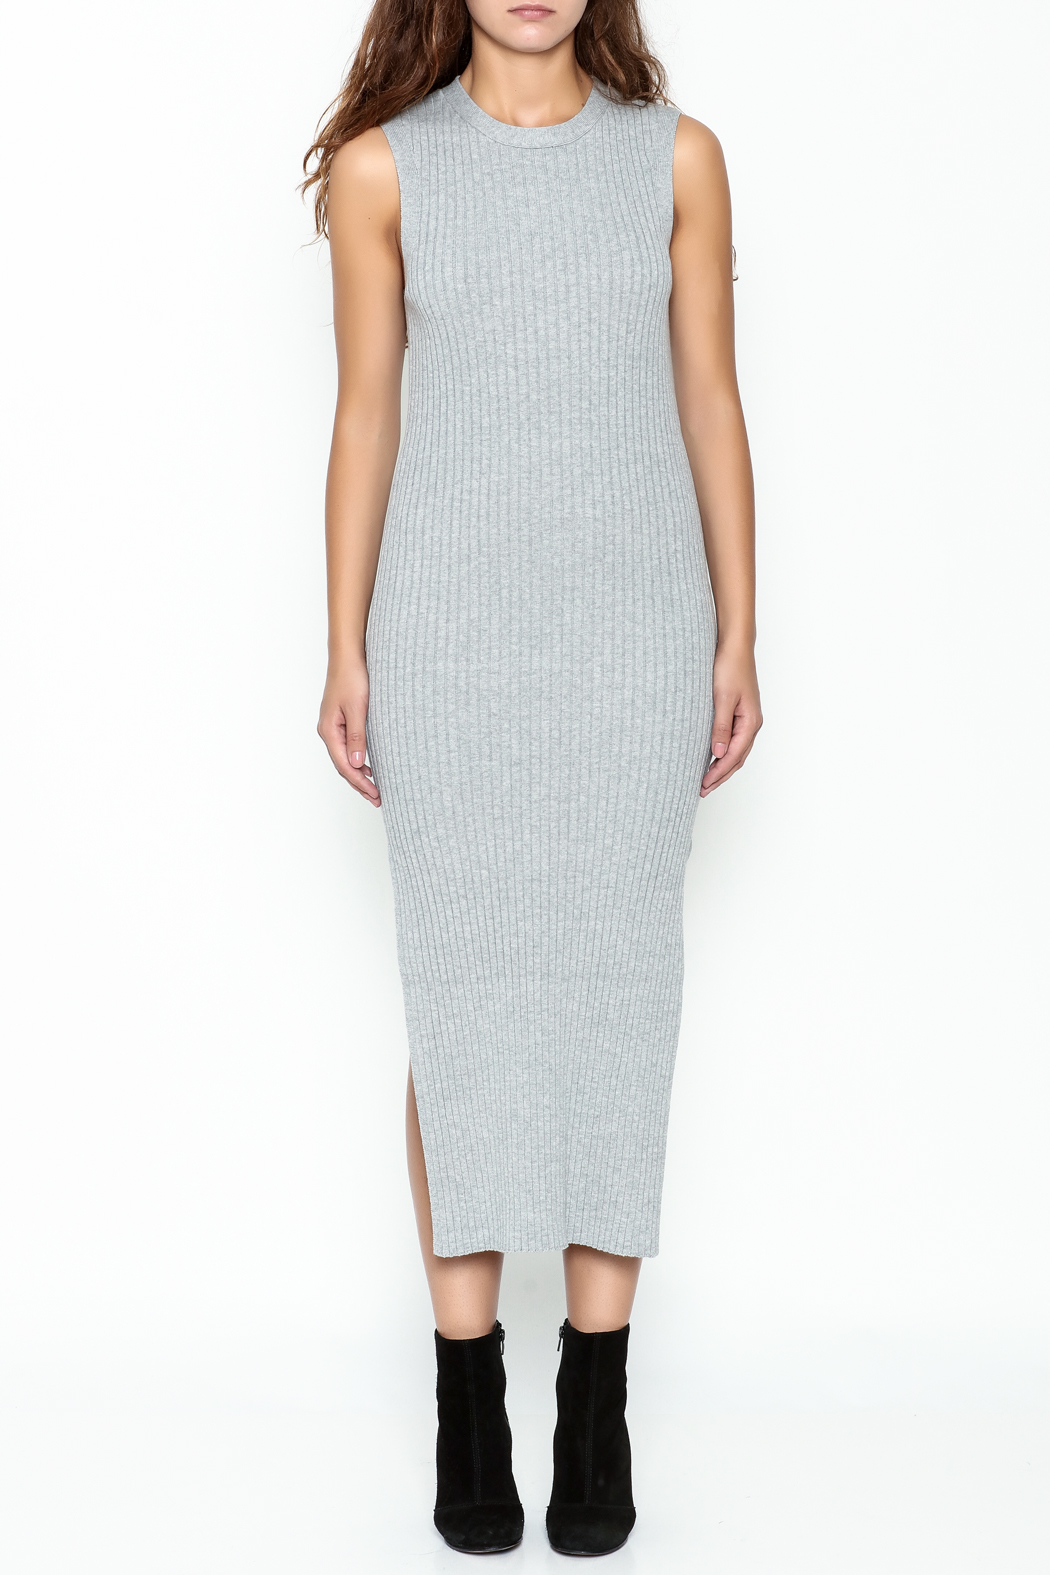 FRAME Denim Grey Ribbed Dress - Front Full Image